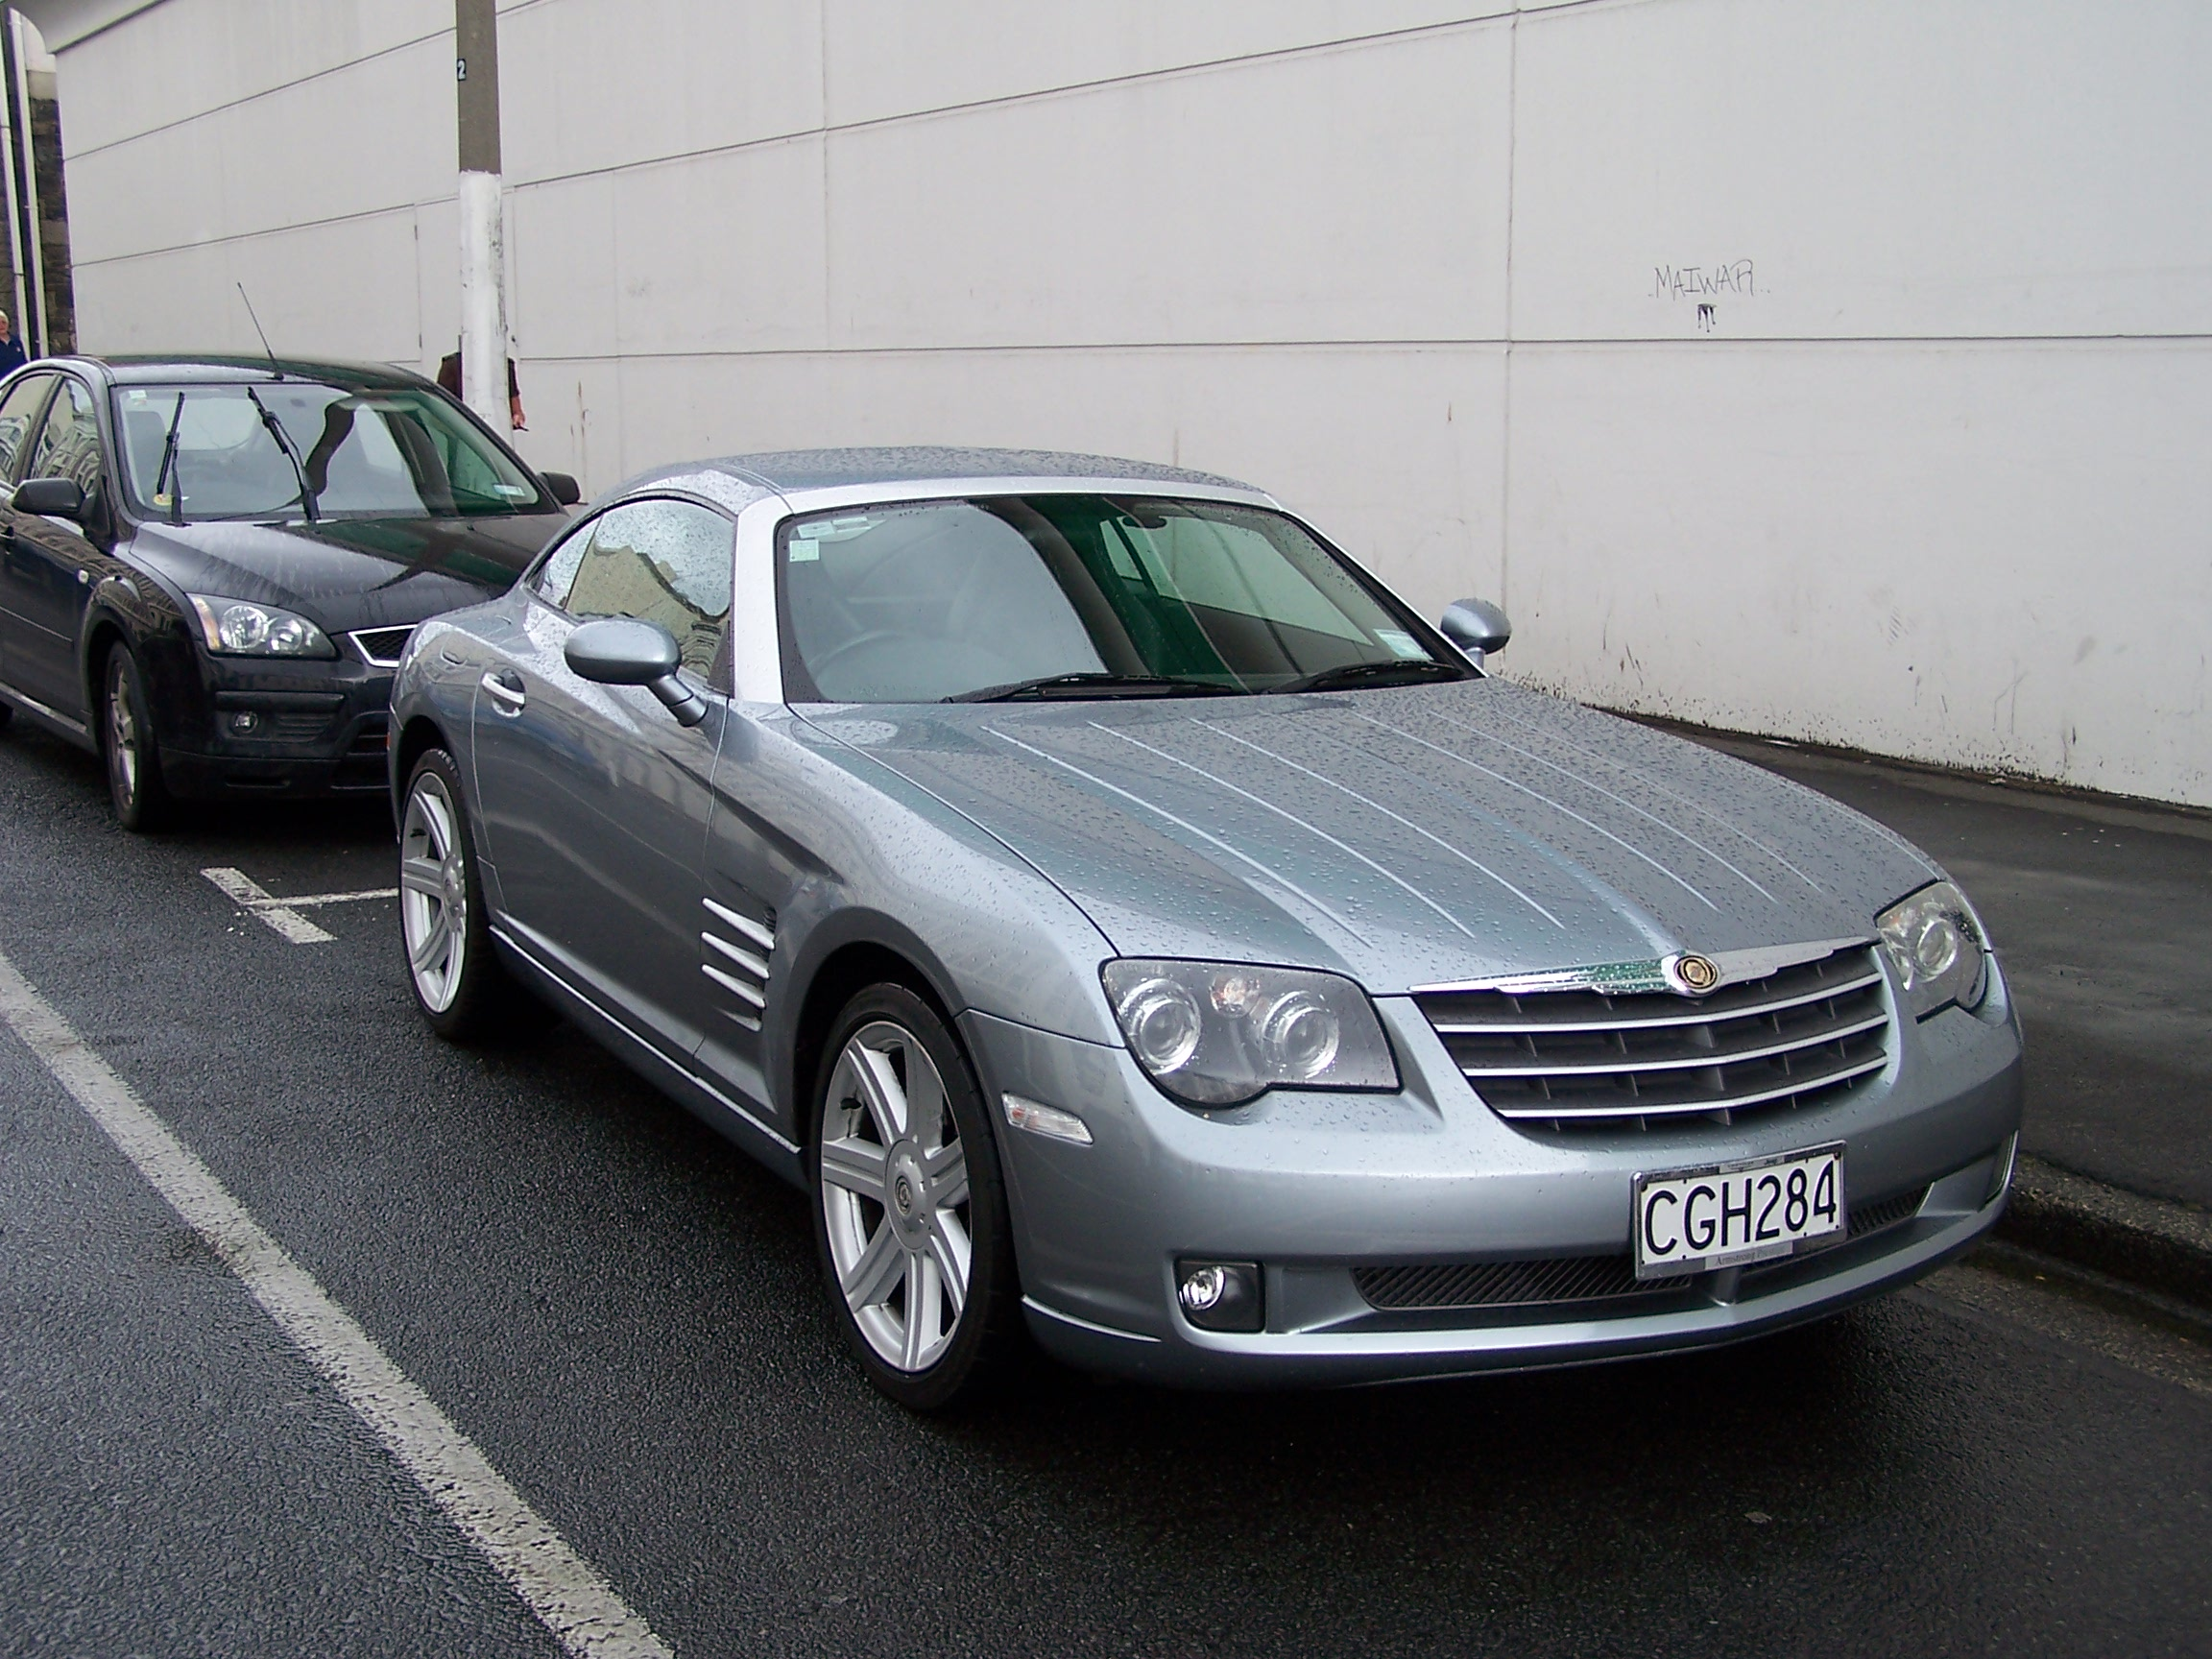 Rained drenched chrysler crossfire photo